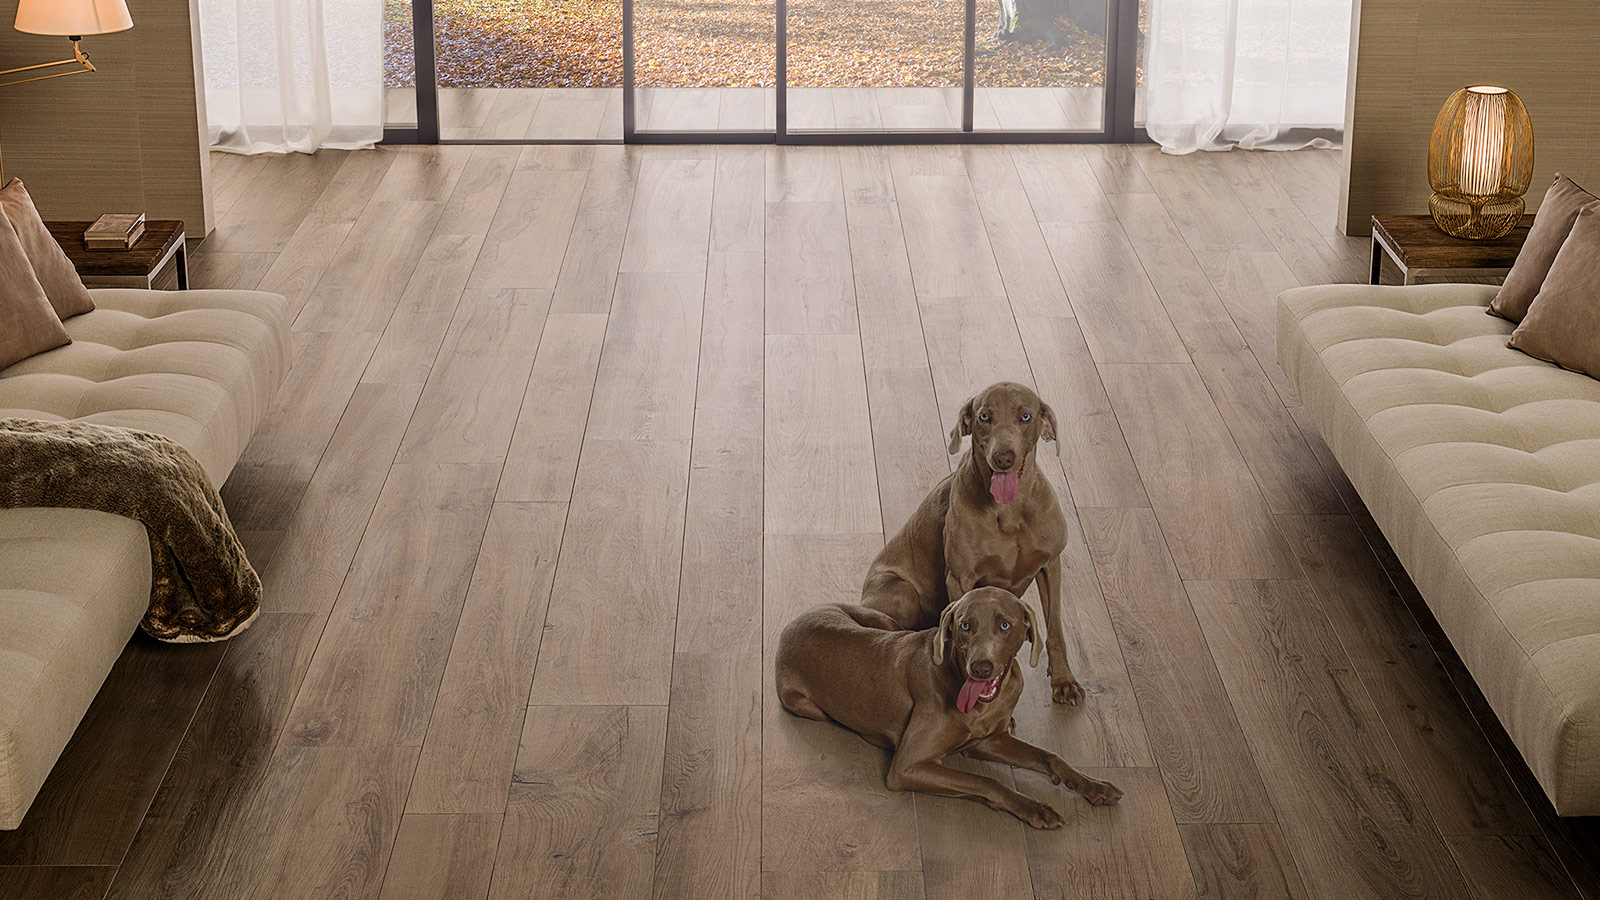 GET THE LOOK: we combine interiors and exteriors with the PAR-KER Manhattan ceramic parquet